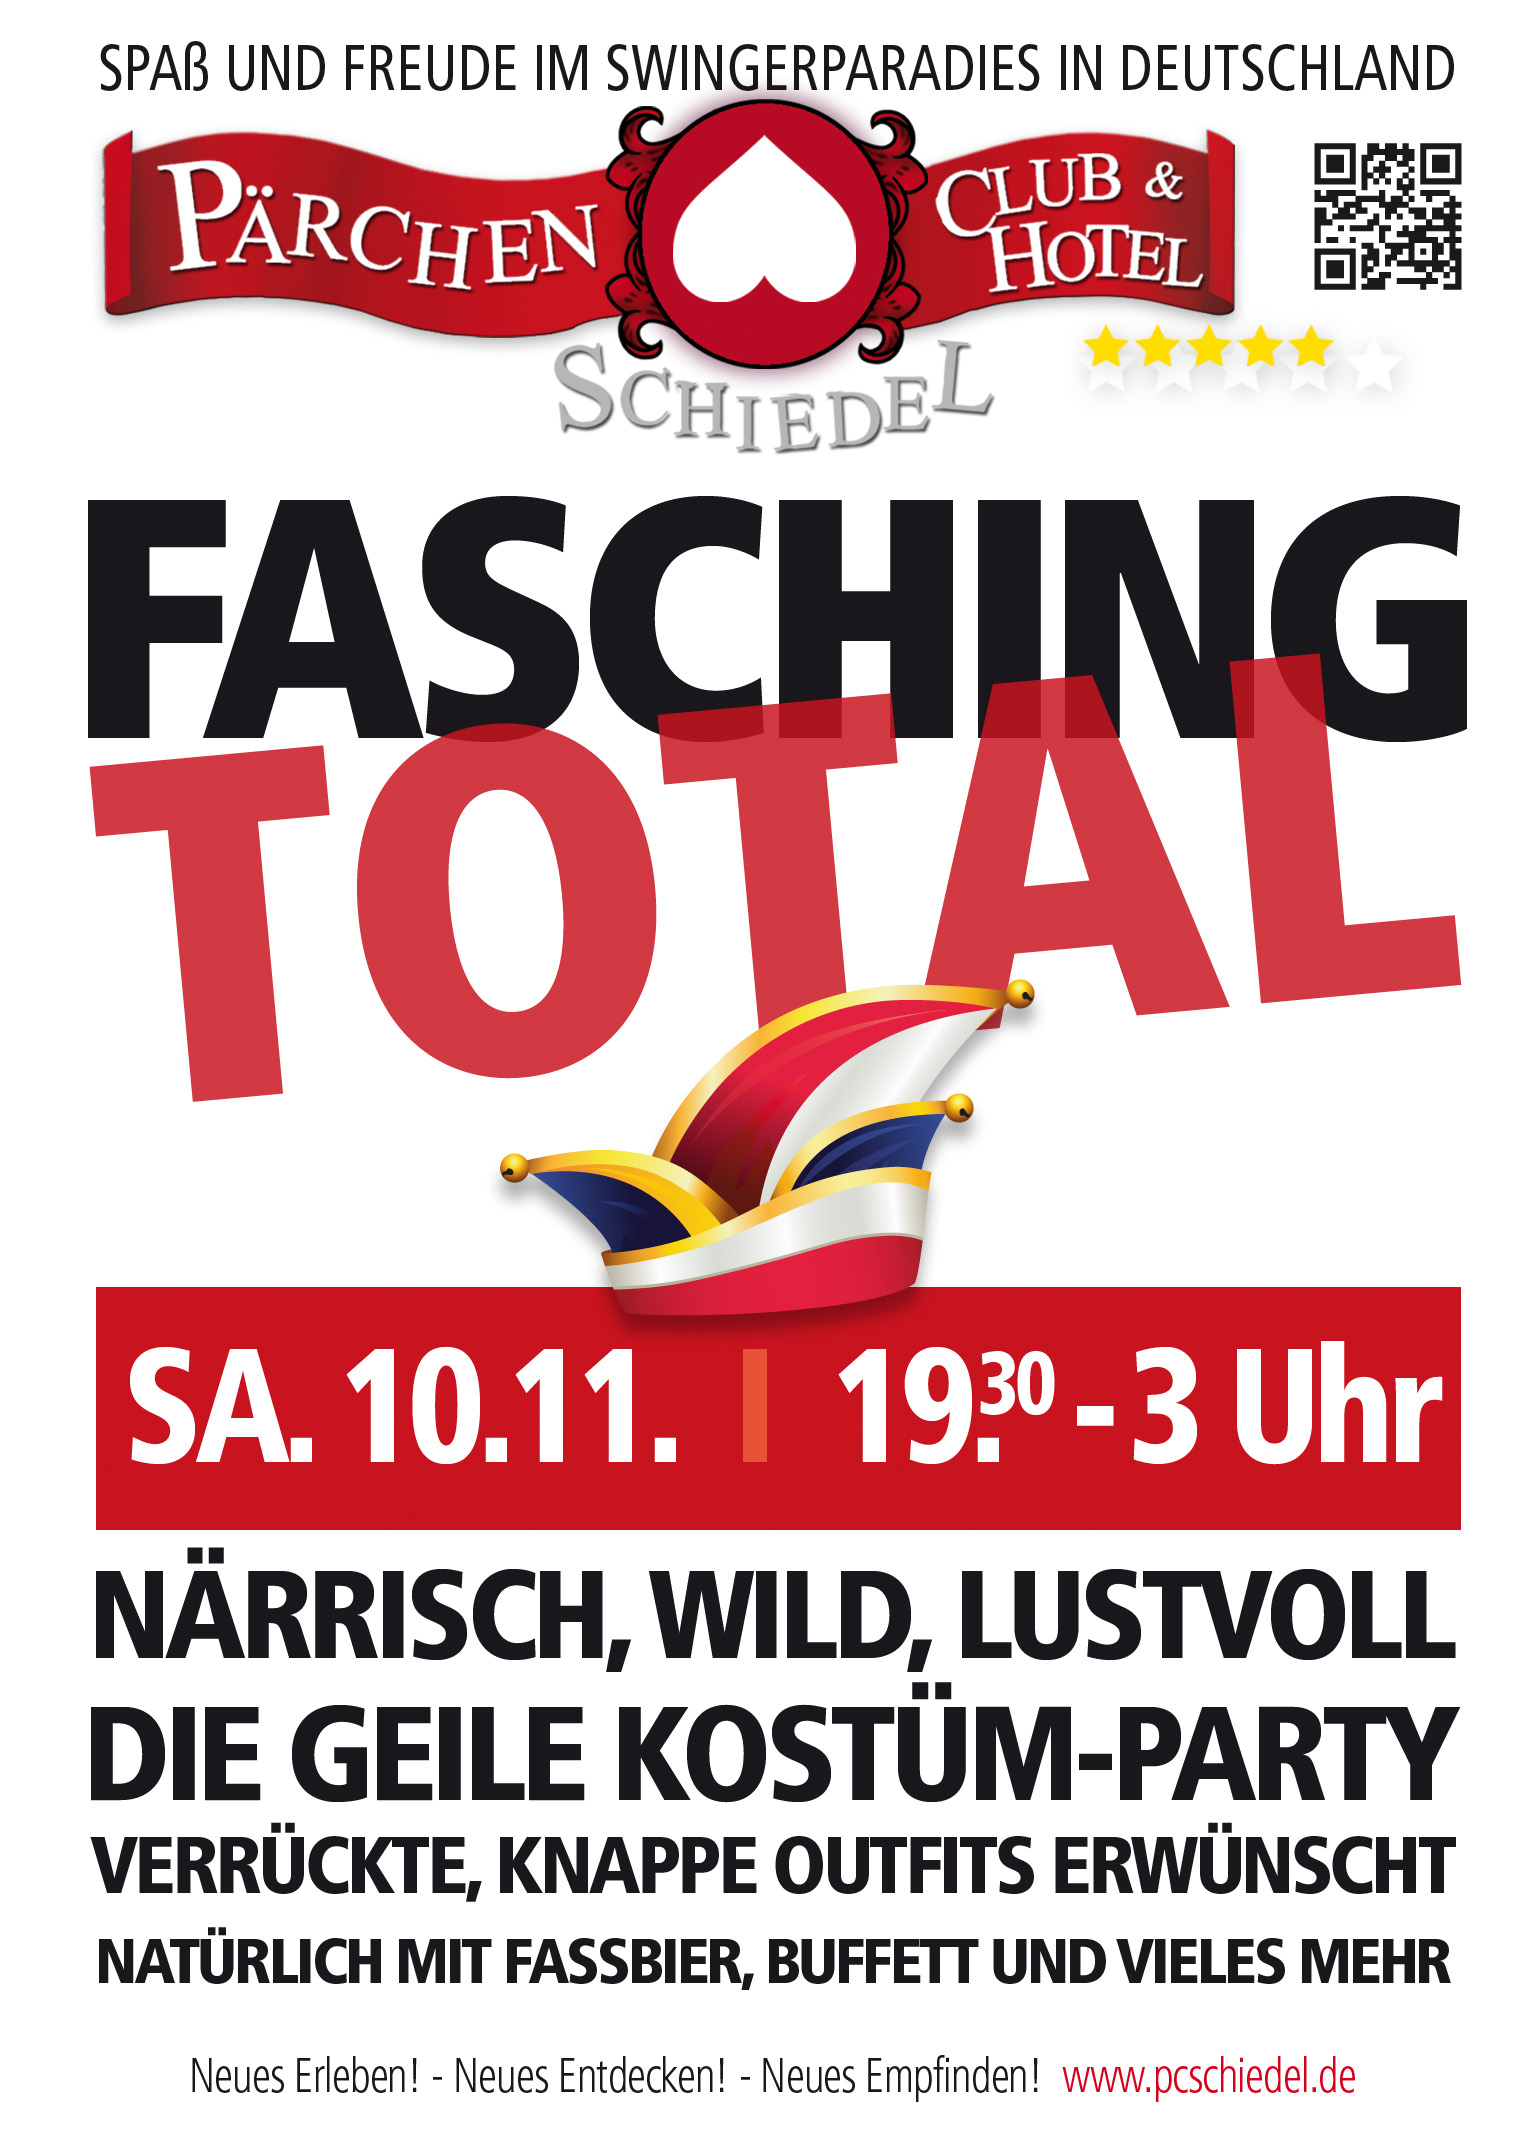 Schiedel FaschingFlyer